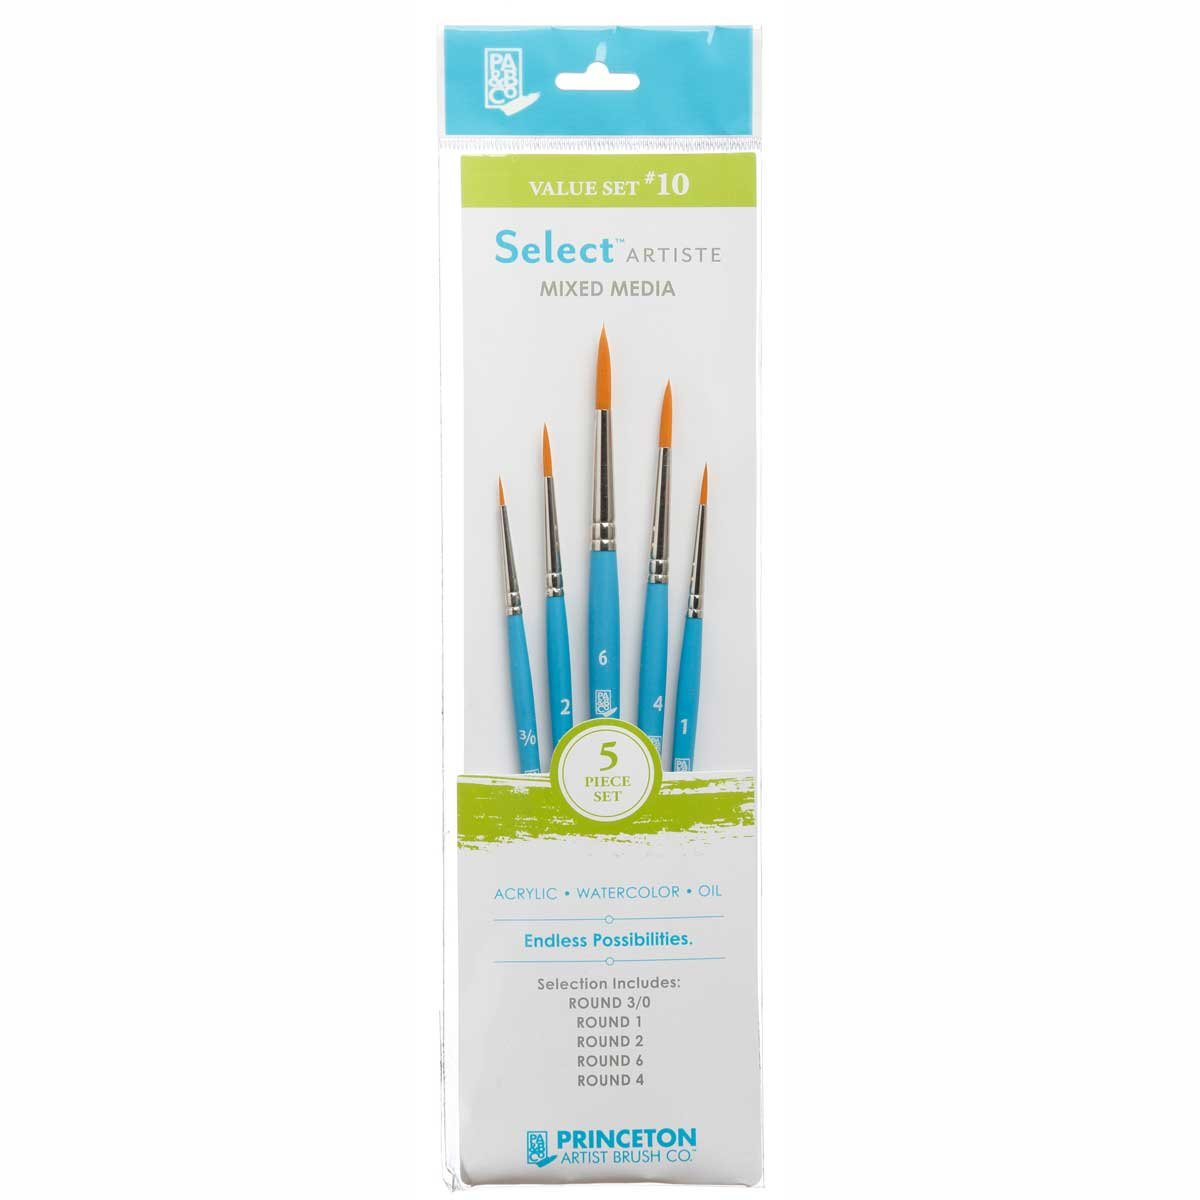 Princeton Select Artiste, Mixed-Media Brushes for Acrylic, Oil, Watercolor Series 3750, 5 Piece Value Set 110